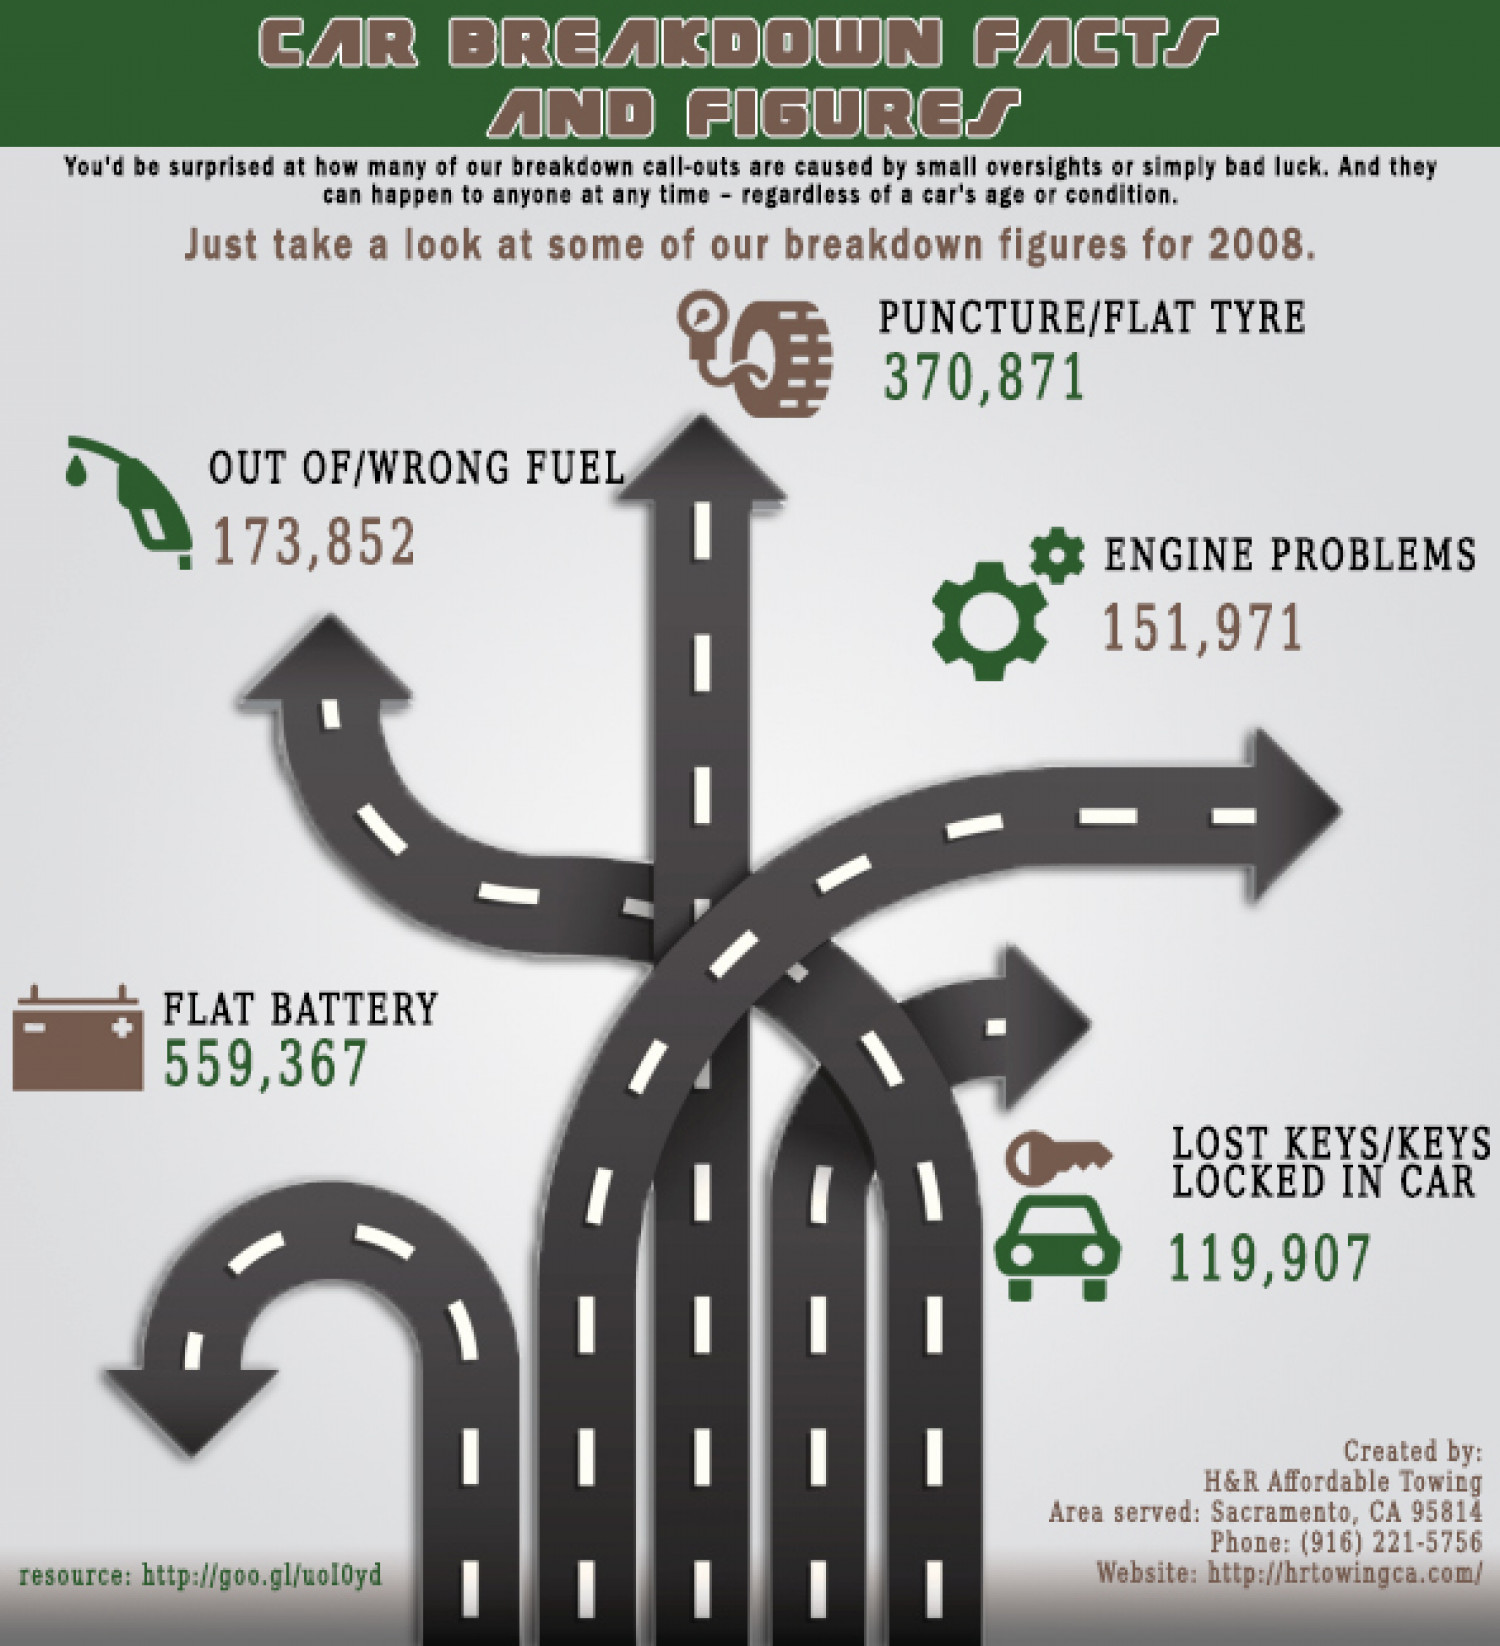 Car Breakdown Facts and Figures Infographic